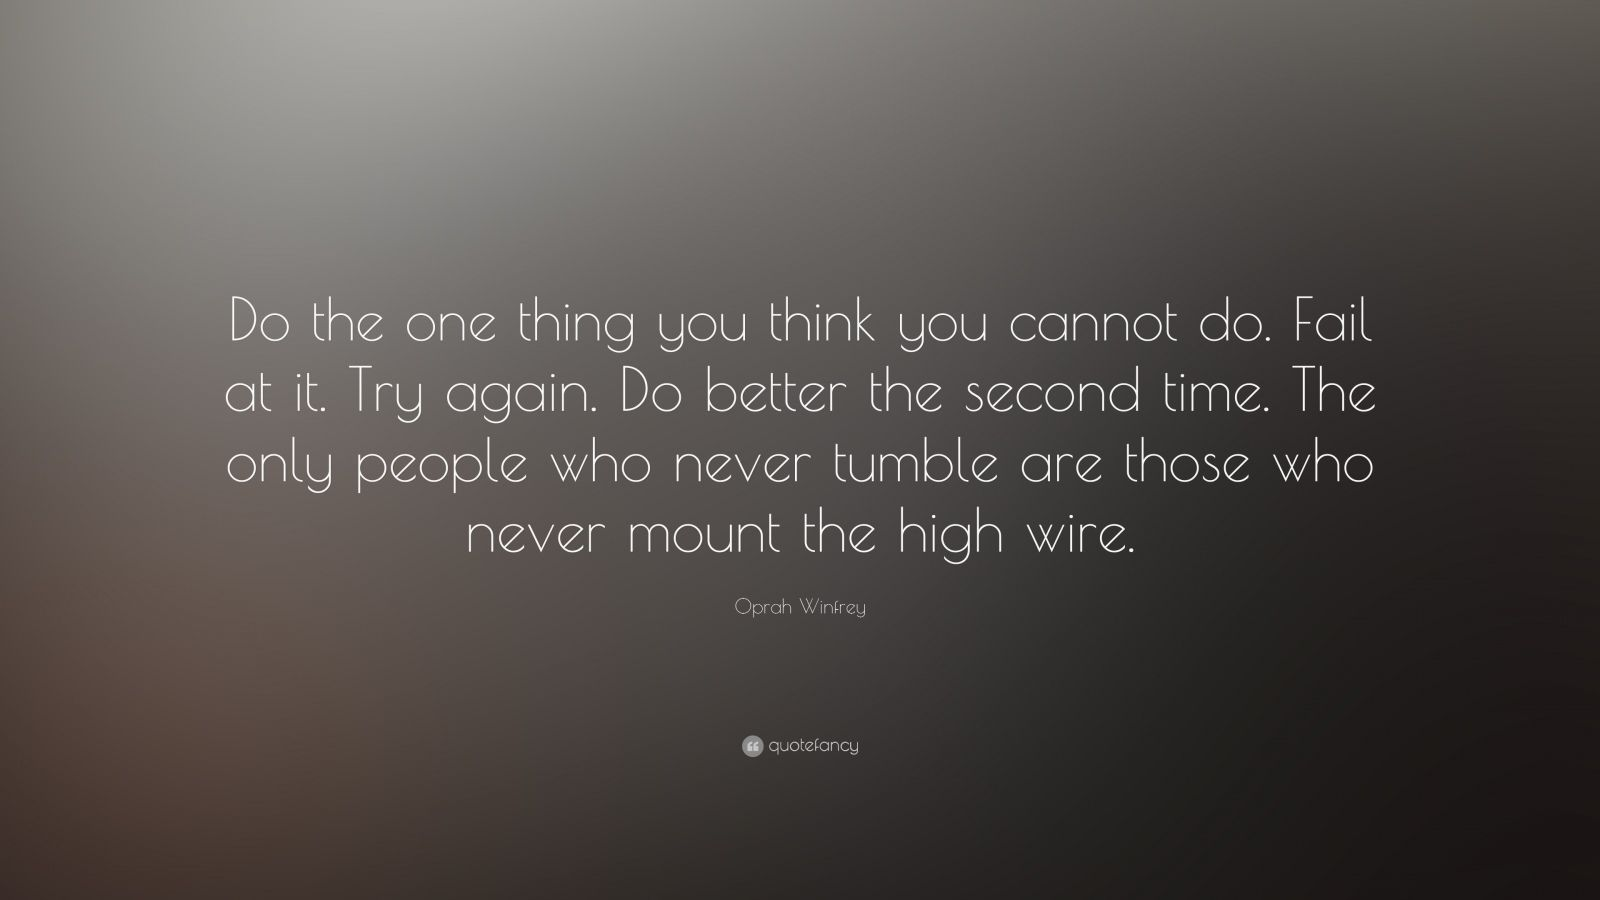 "Oprah Winfrey Quote: ""Do the one thing you think you cannot do. Fail at it. Try again. Do better the second time. The only people who never tumble are those who never mount the high wire."""